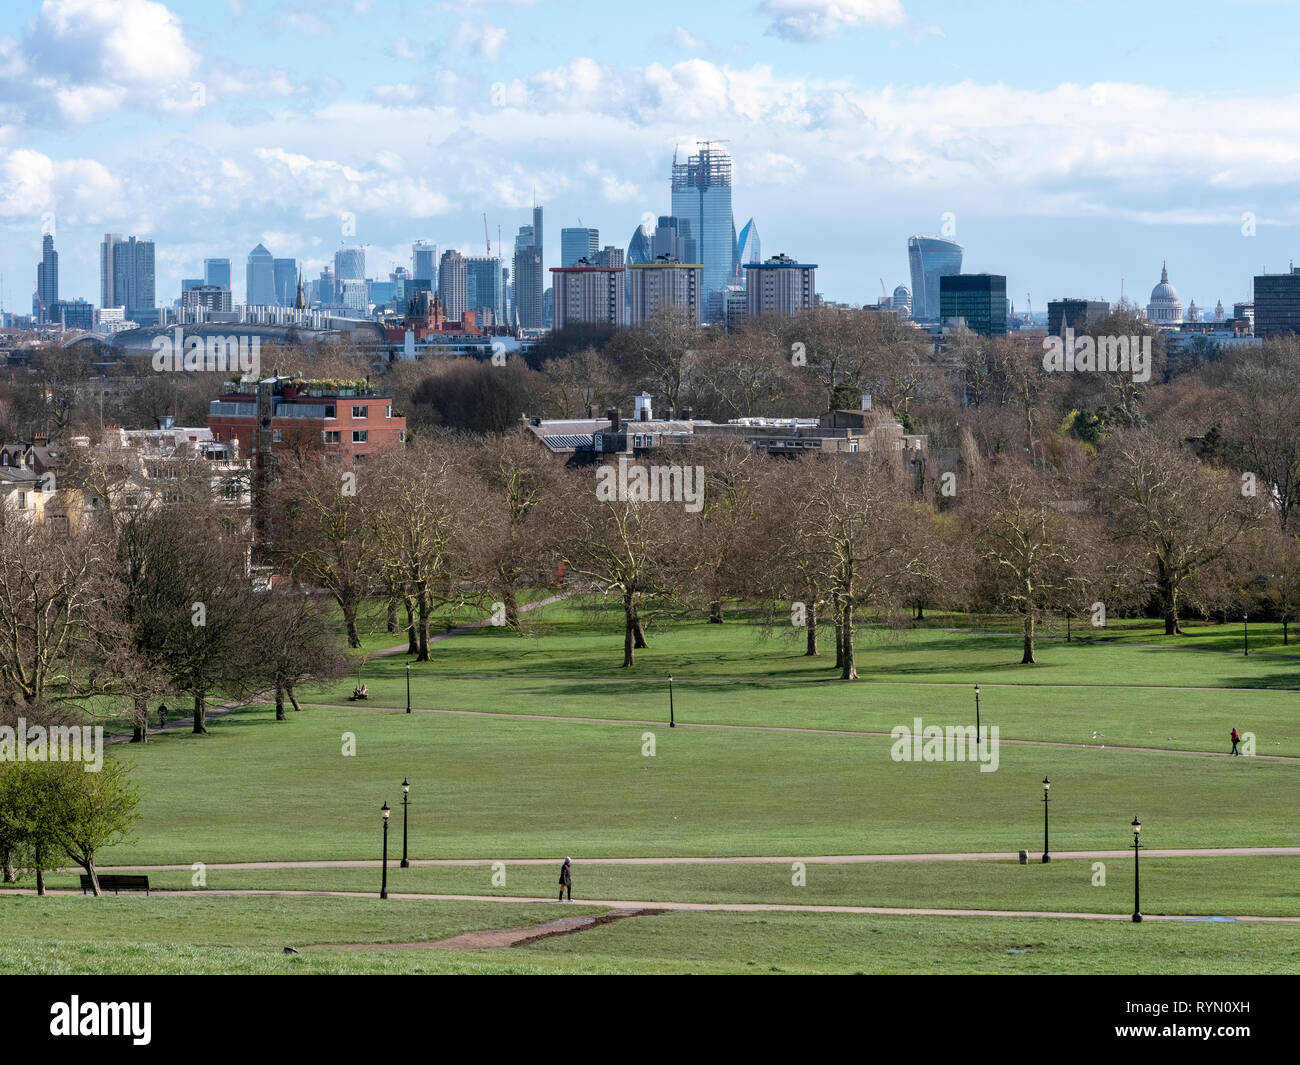 March 2019: London City skyline taken from the top of Primrose Hill shows the dominance of a new building, 22 Bishopsgate in the 'square mile' - Stock Image